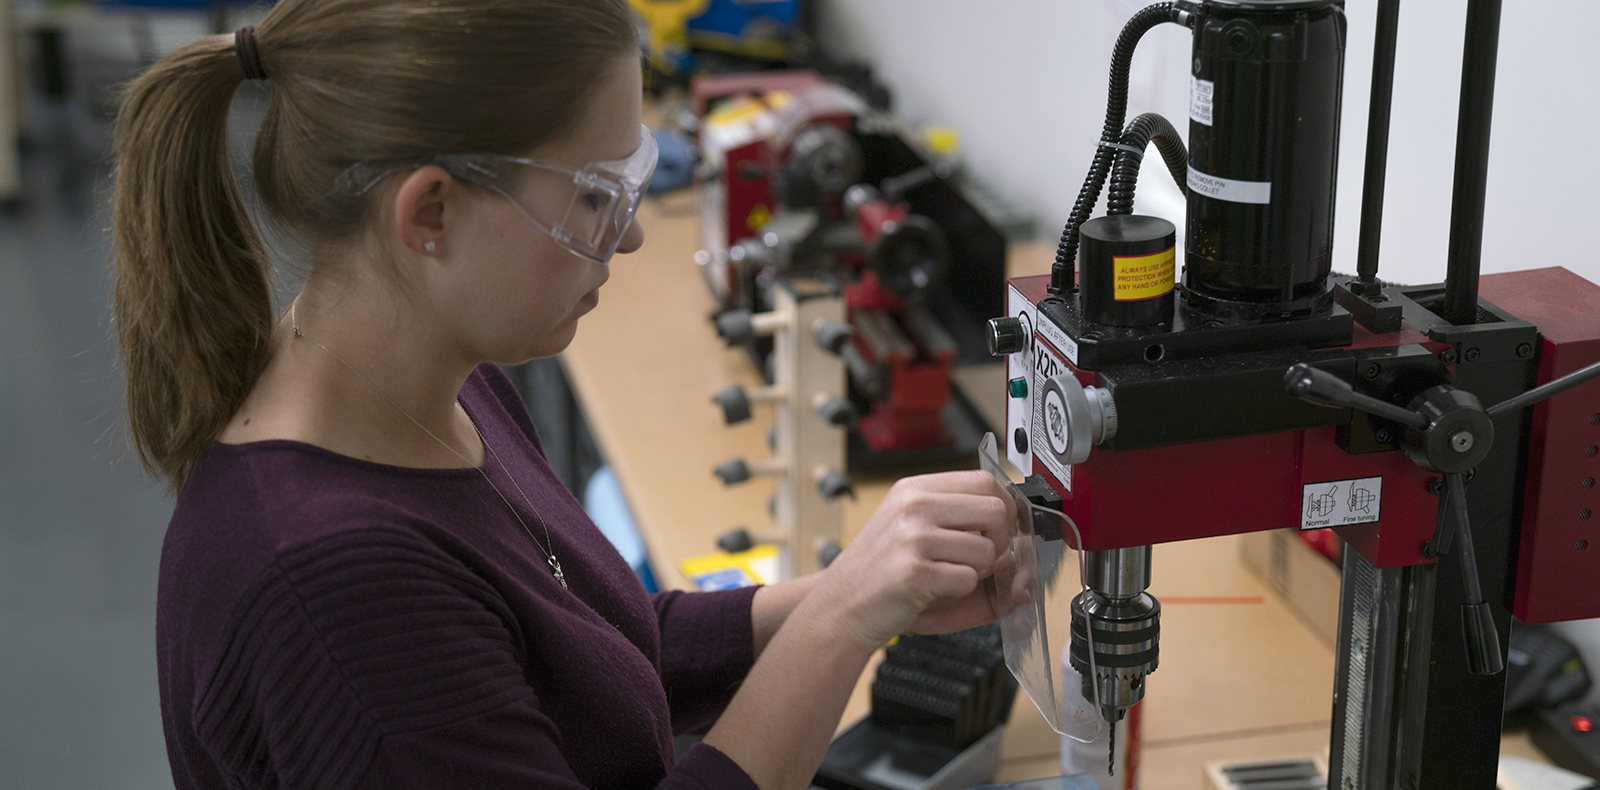 Photograph of a woman concentrated wearing protective eye glasses. Working on a machine in a lab setting.